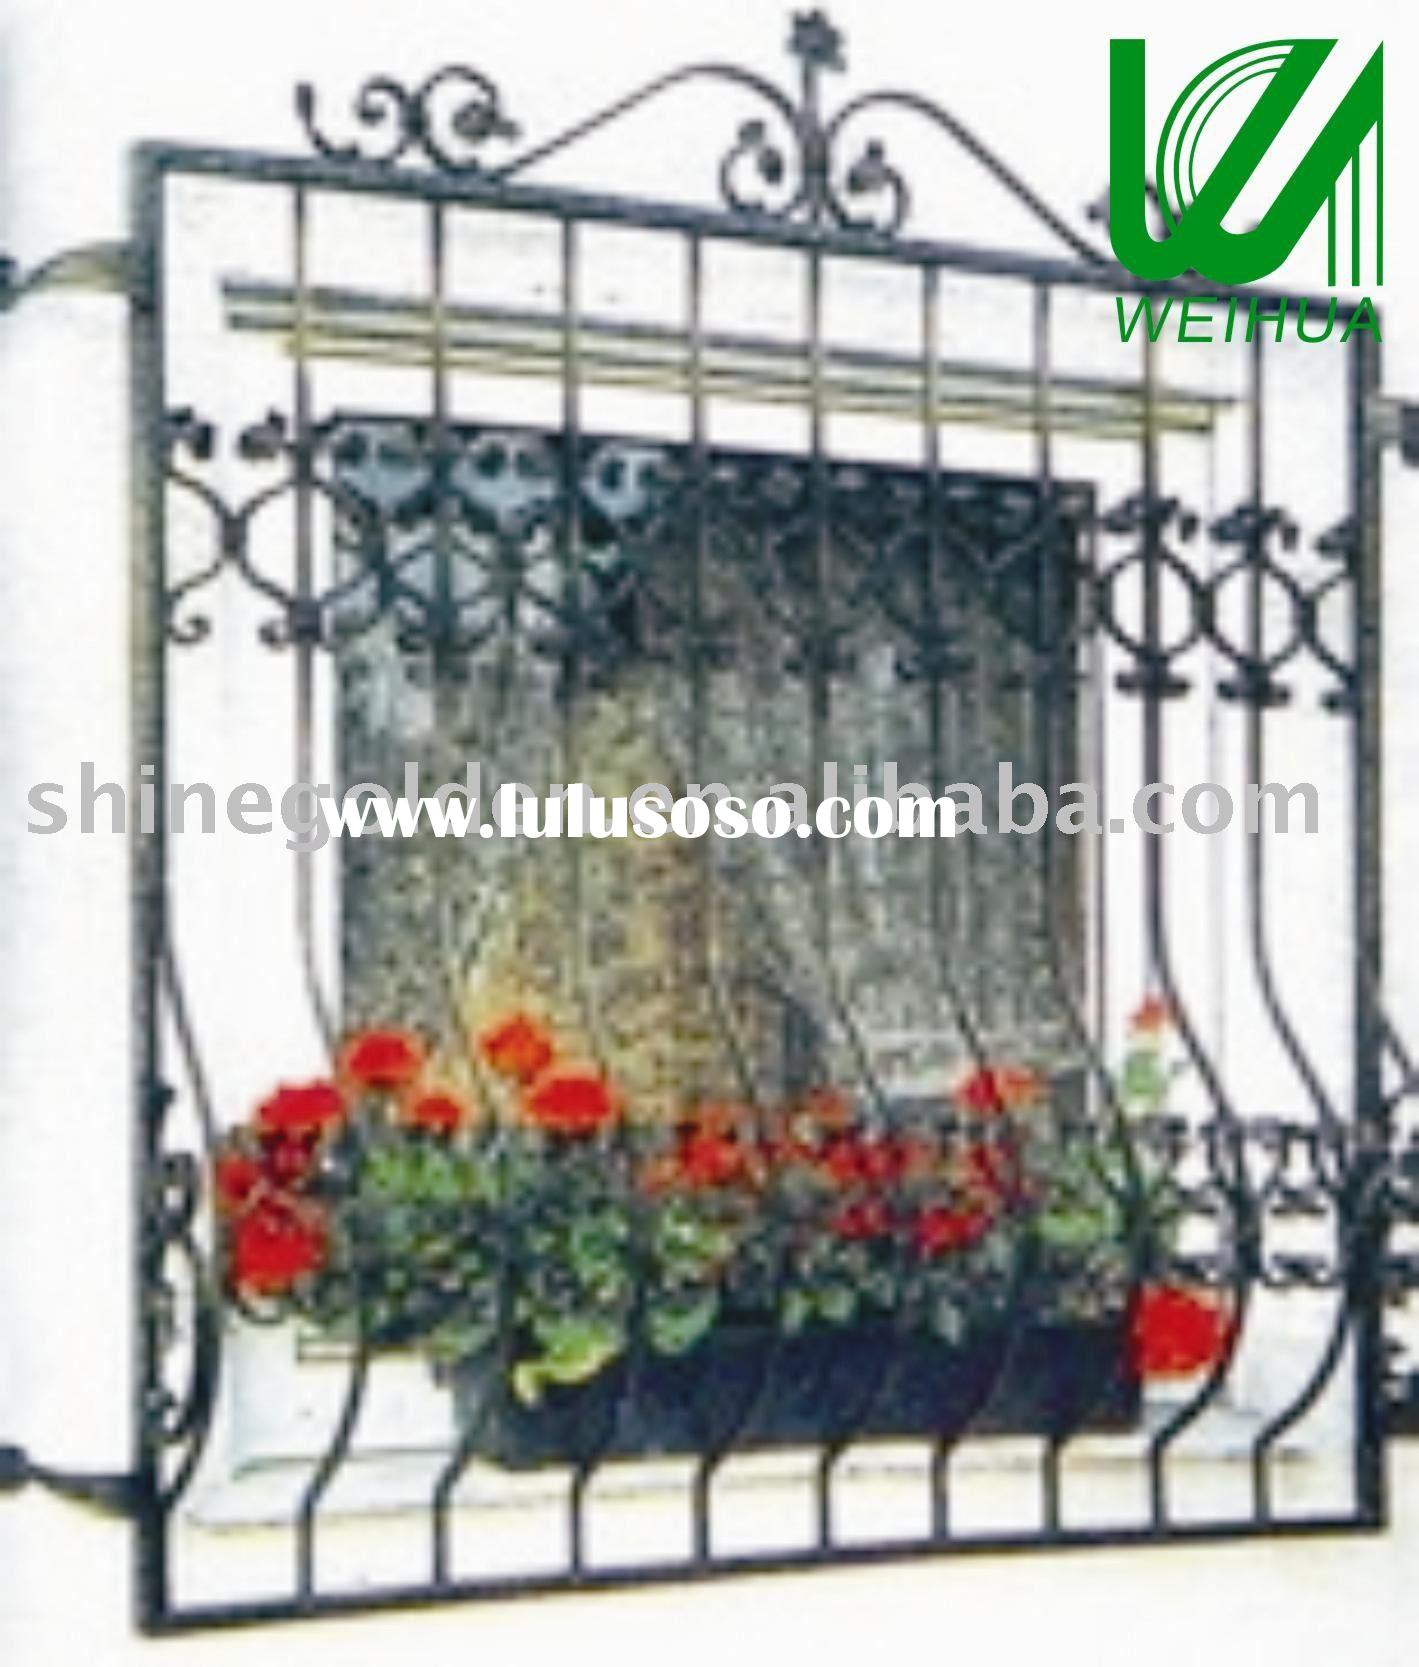 ... window grills class wrought iron window grills wrought iron grill